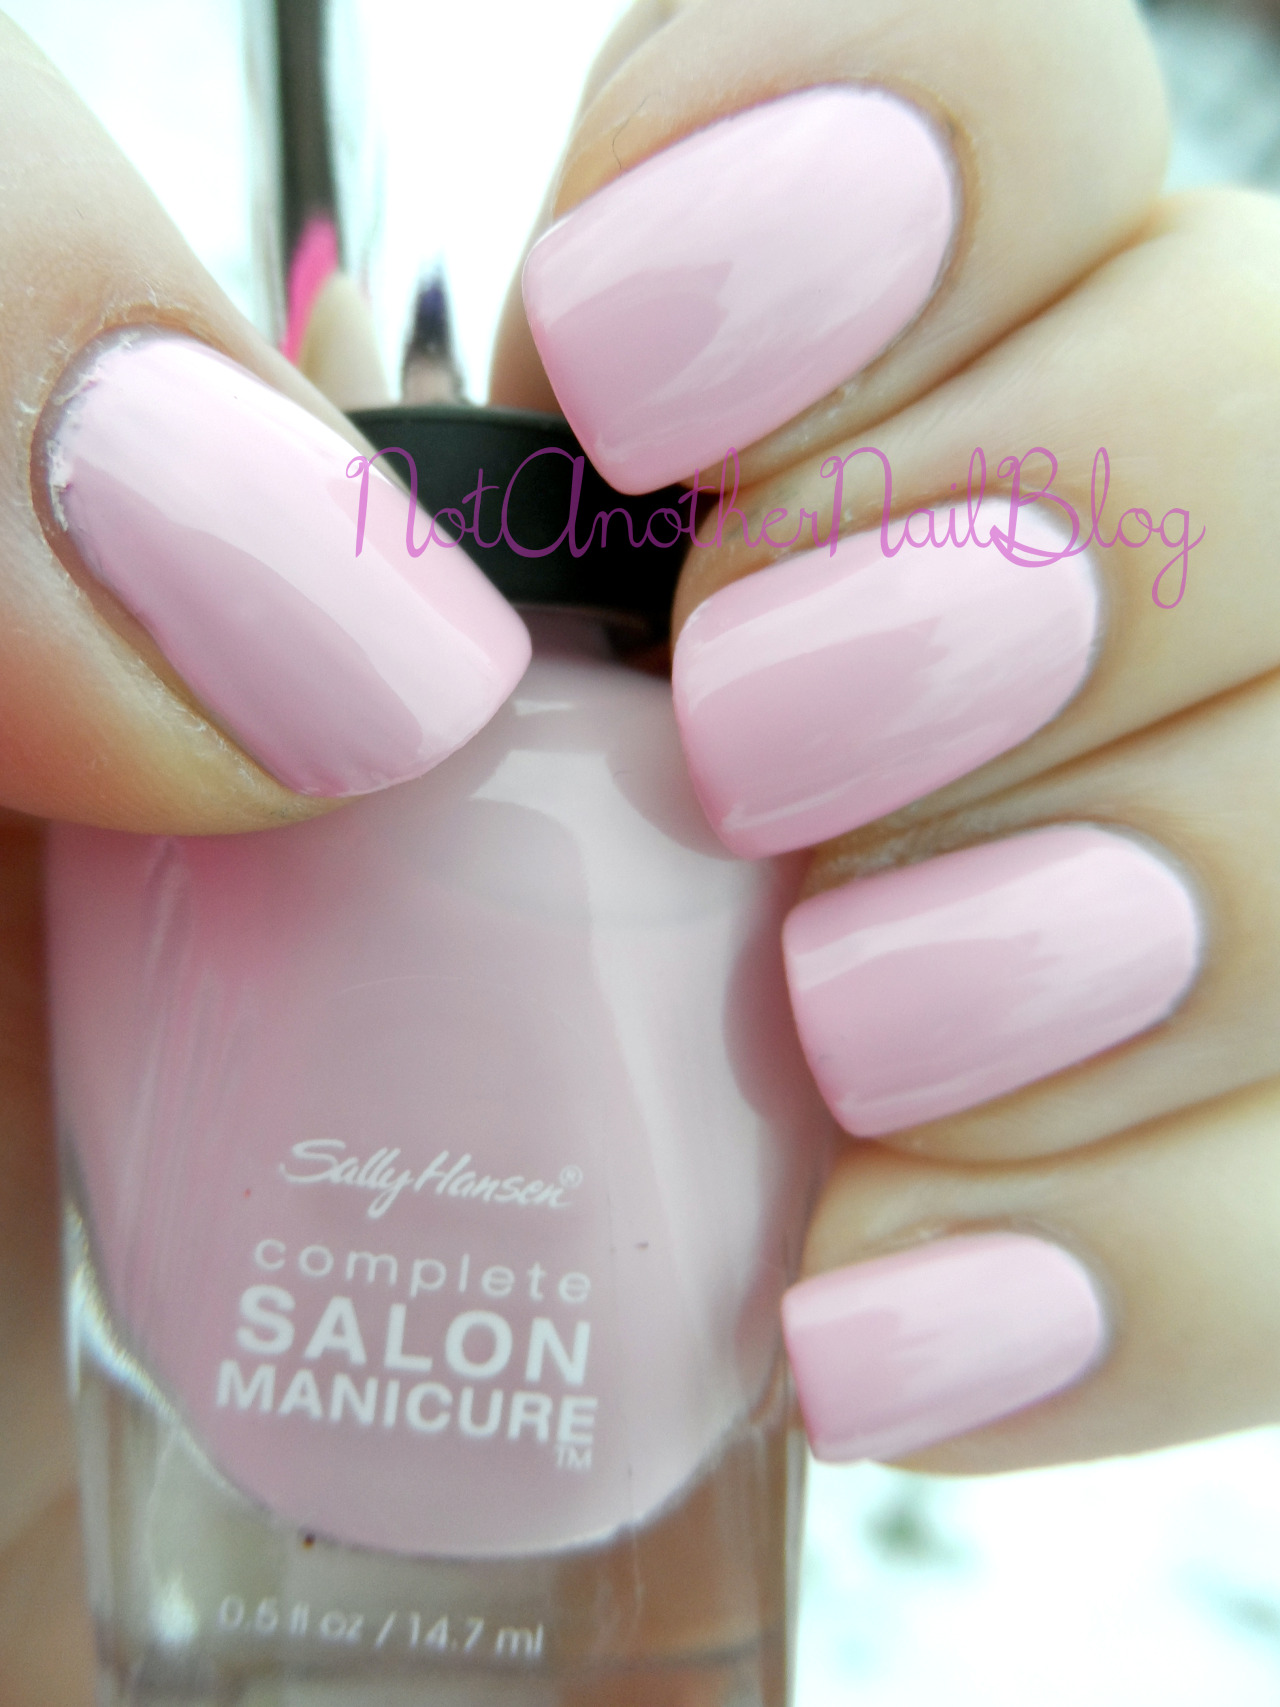 Pink a Card is another of the new reformulated Sally Hansen Complete Salon Manicure line, and it's a lovely creamy soft baby pink.  It's just a darling color, very work appropriate and I think it would be a fantastic base to some nail art. When I first saw it I thought it would be close to Pink Friday from the Nicki Minaj collection from OPI, but it's actually much lighter, certainly in the same family, but not a dupe at all. If you'd like to try these out, you can order them here, here, or you can usually pick them up at your local drug store for about $7.99 but they go on sale often.       Disclosure- Products were provided to me by the manufacturer for my opinion and honest review. See here for more information.